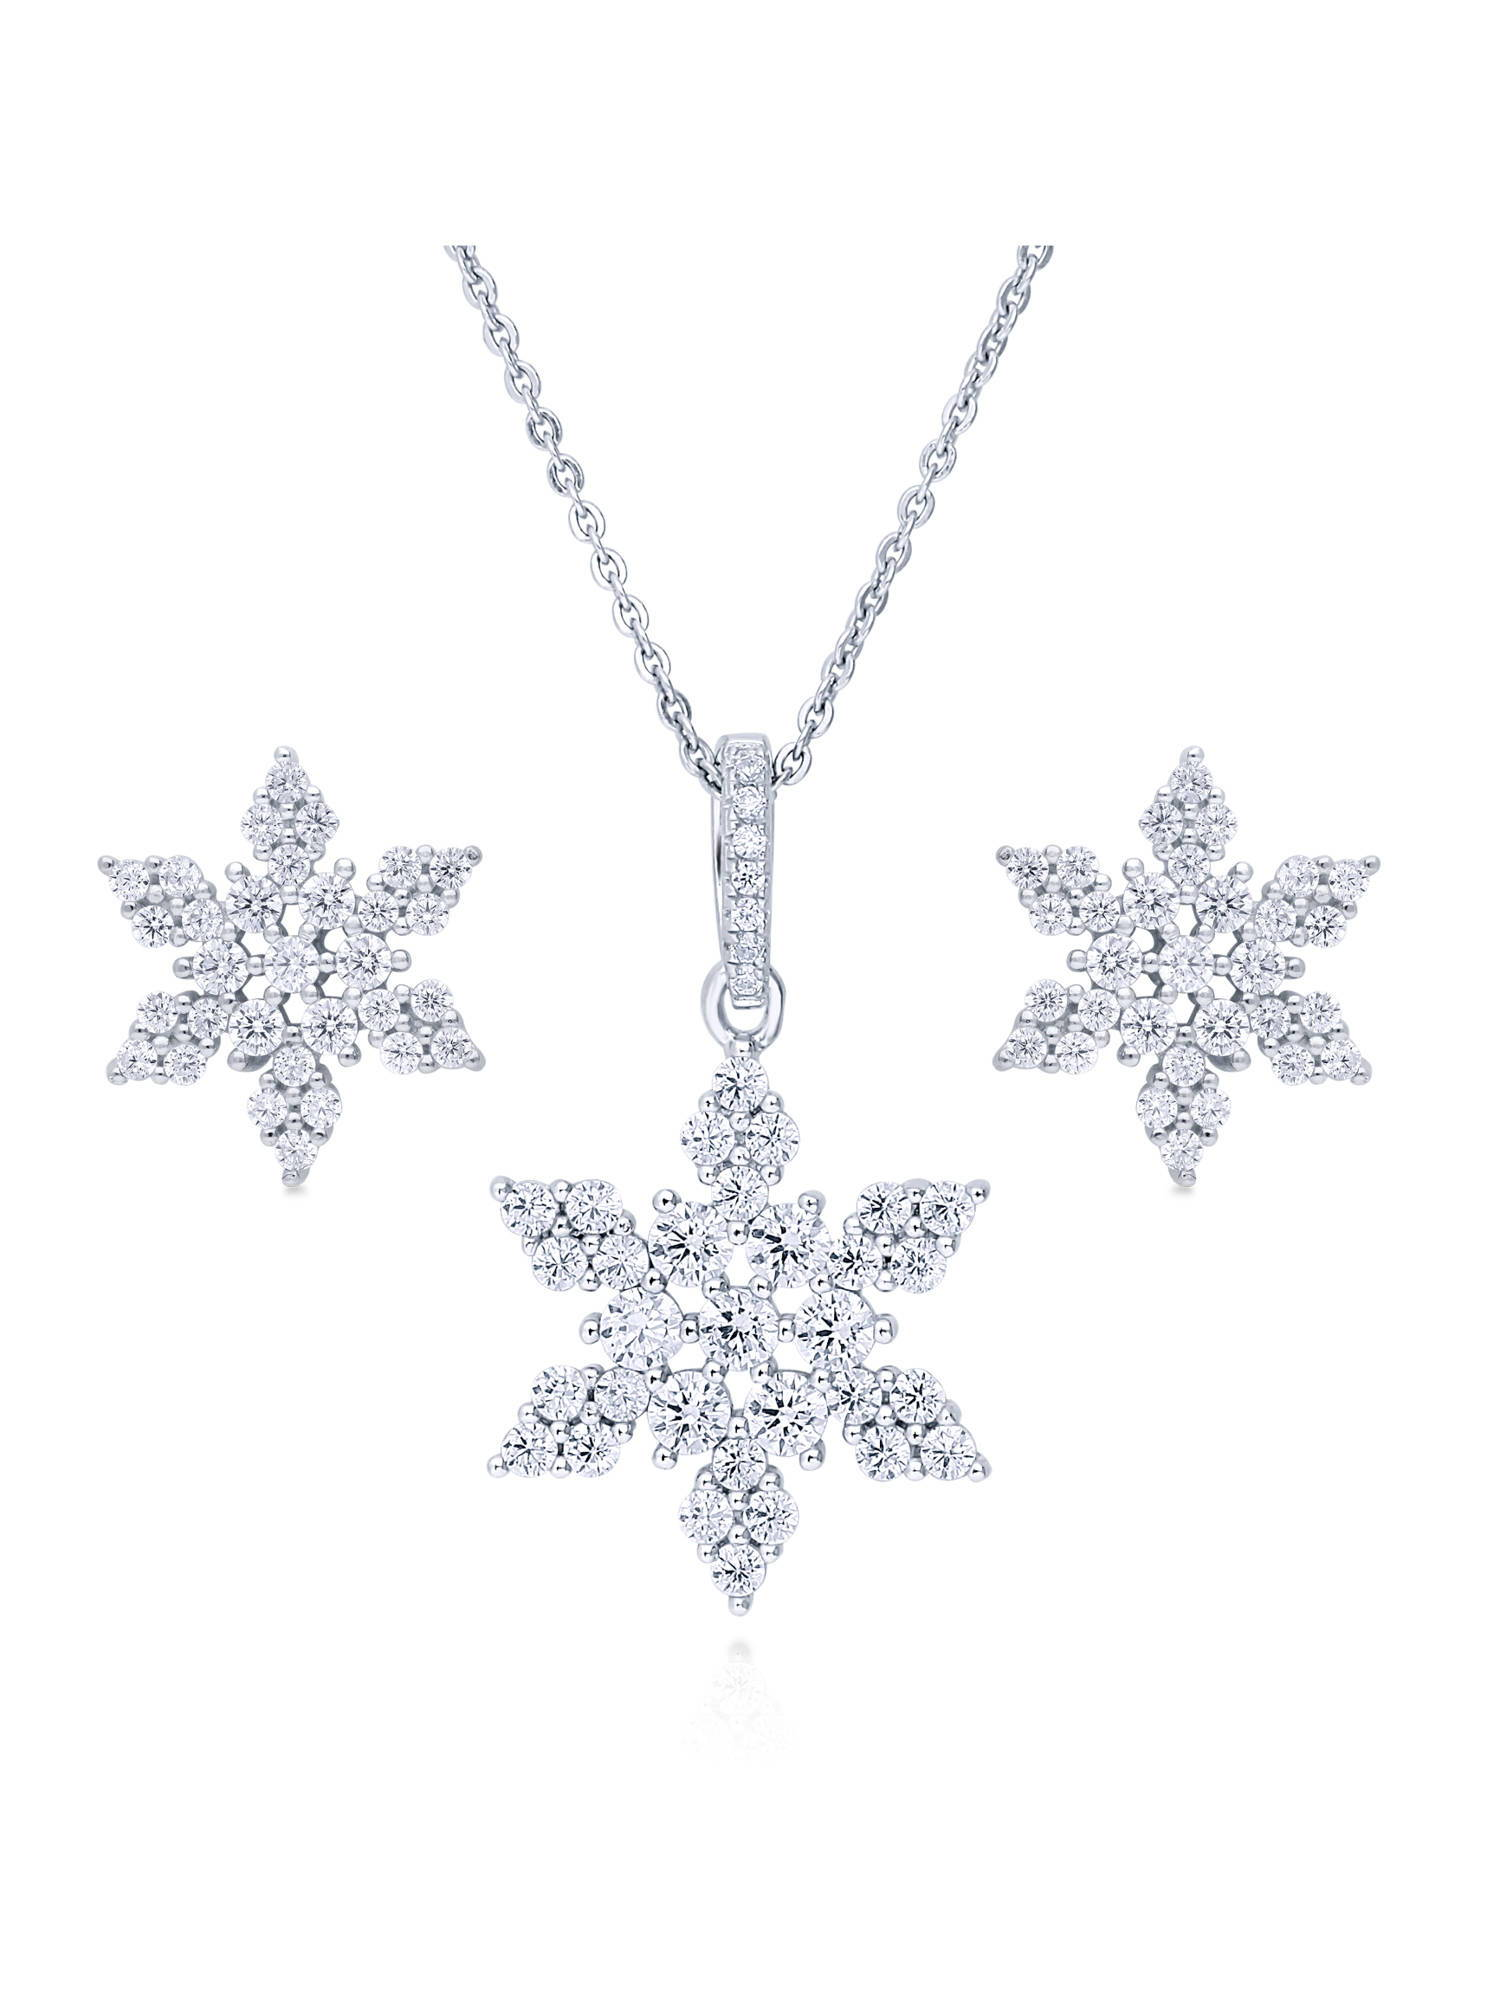 Snowflake earrings and necklace set